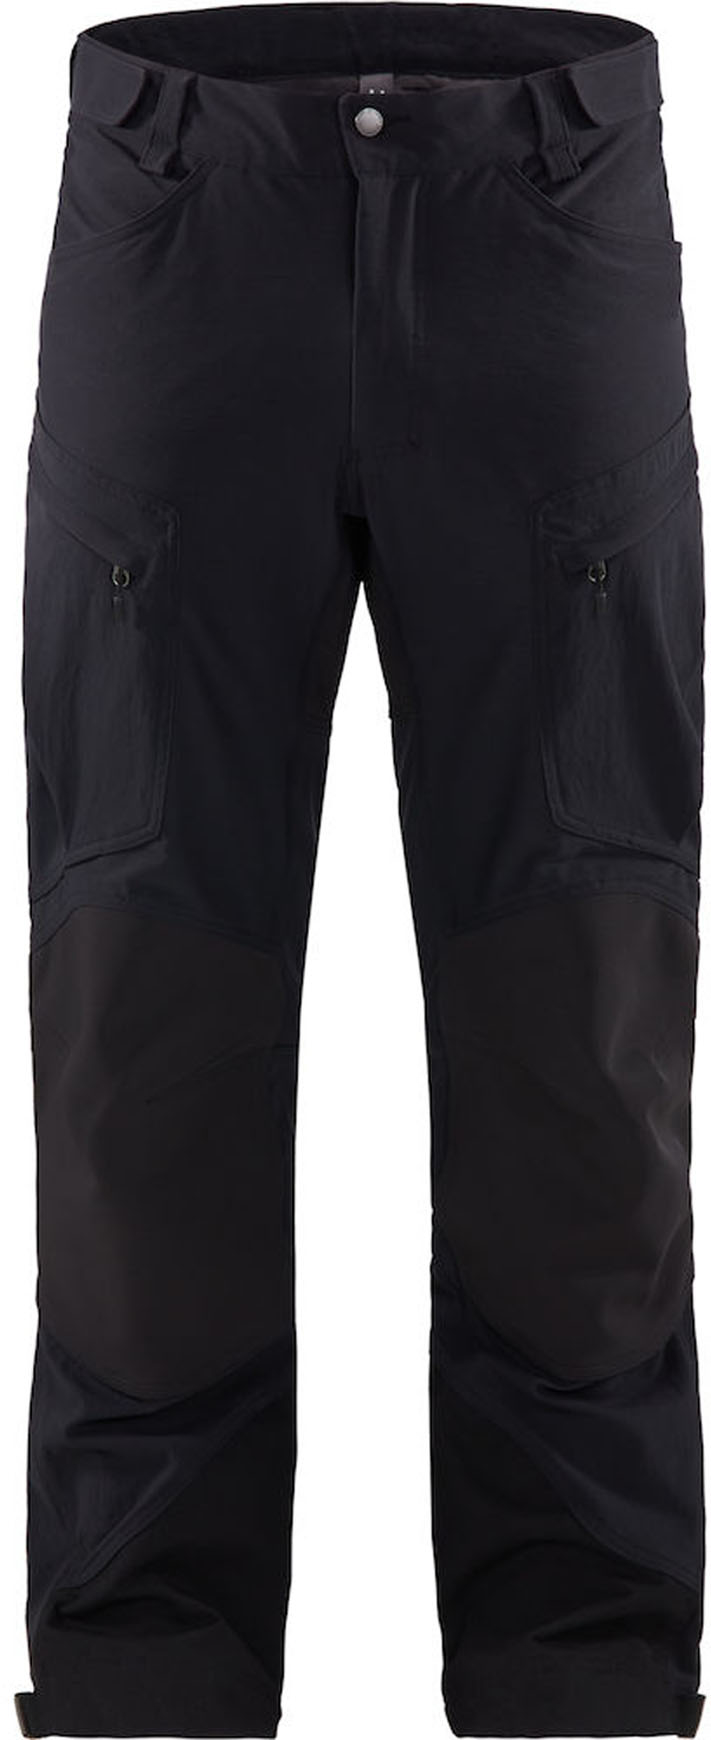 Haglofs Rugged Mountain Pant Men True Black Solid Mountaineering Pants Trousers Snowleader